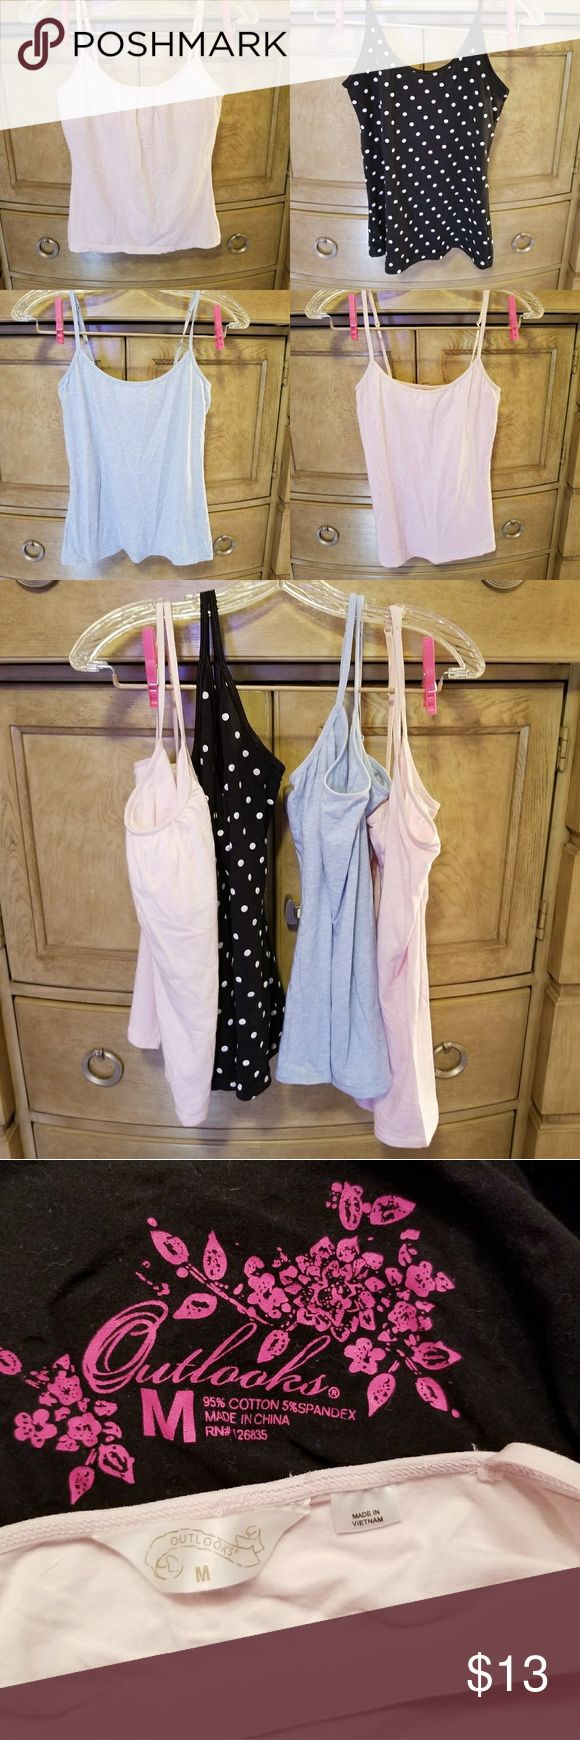 💐Bundle of 4 Cami Tops💐 Bundle of cami tops: 2 Outlooks & 2 Charlotte Russe, all size med. All with adjustable straps except the black with white polka dots & the pink Outlooks has a shelf bra & ruched front. All super cute & super comfy.💐 Tops